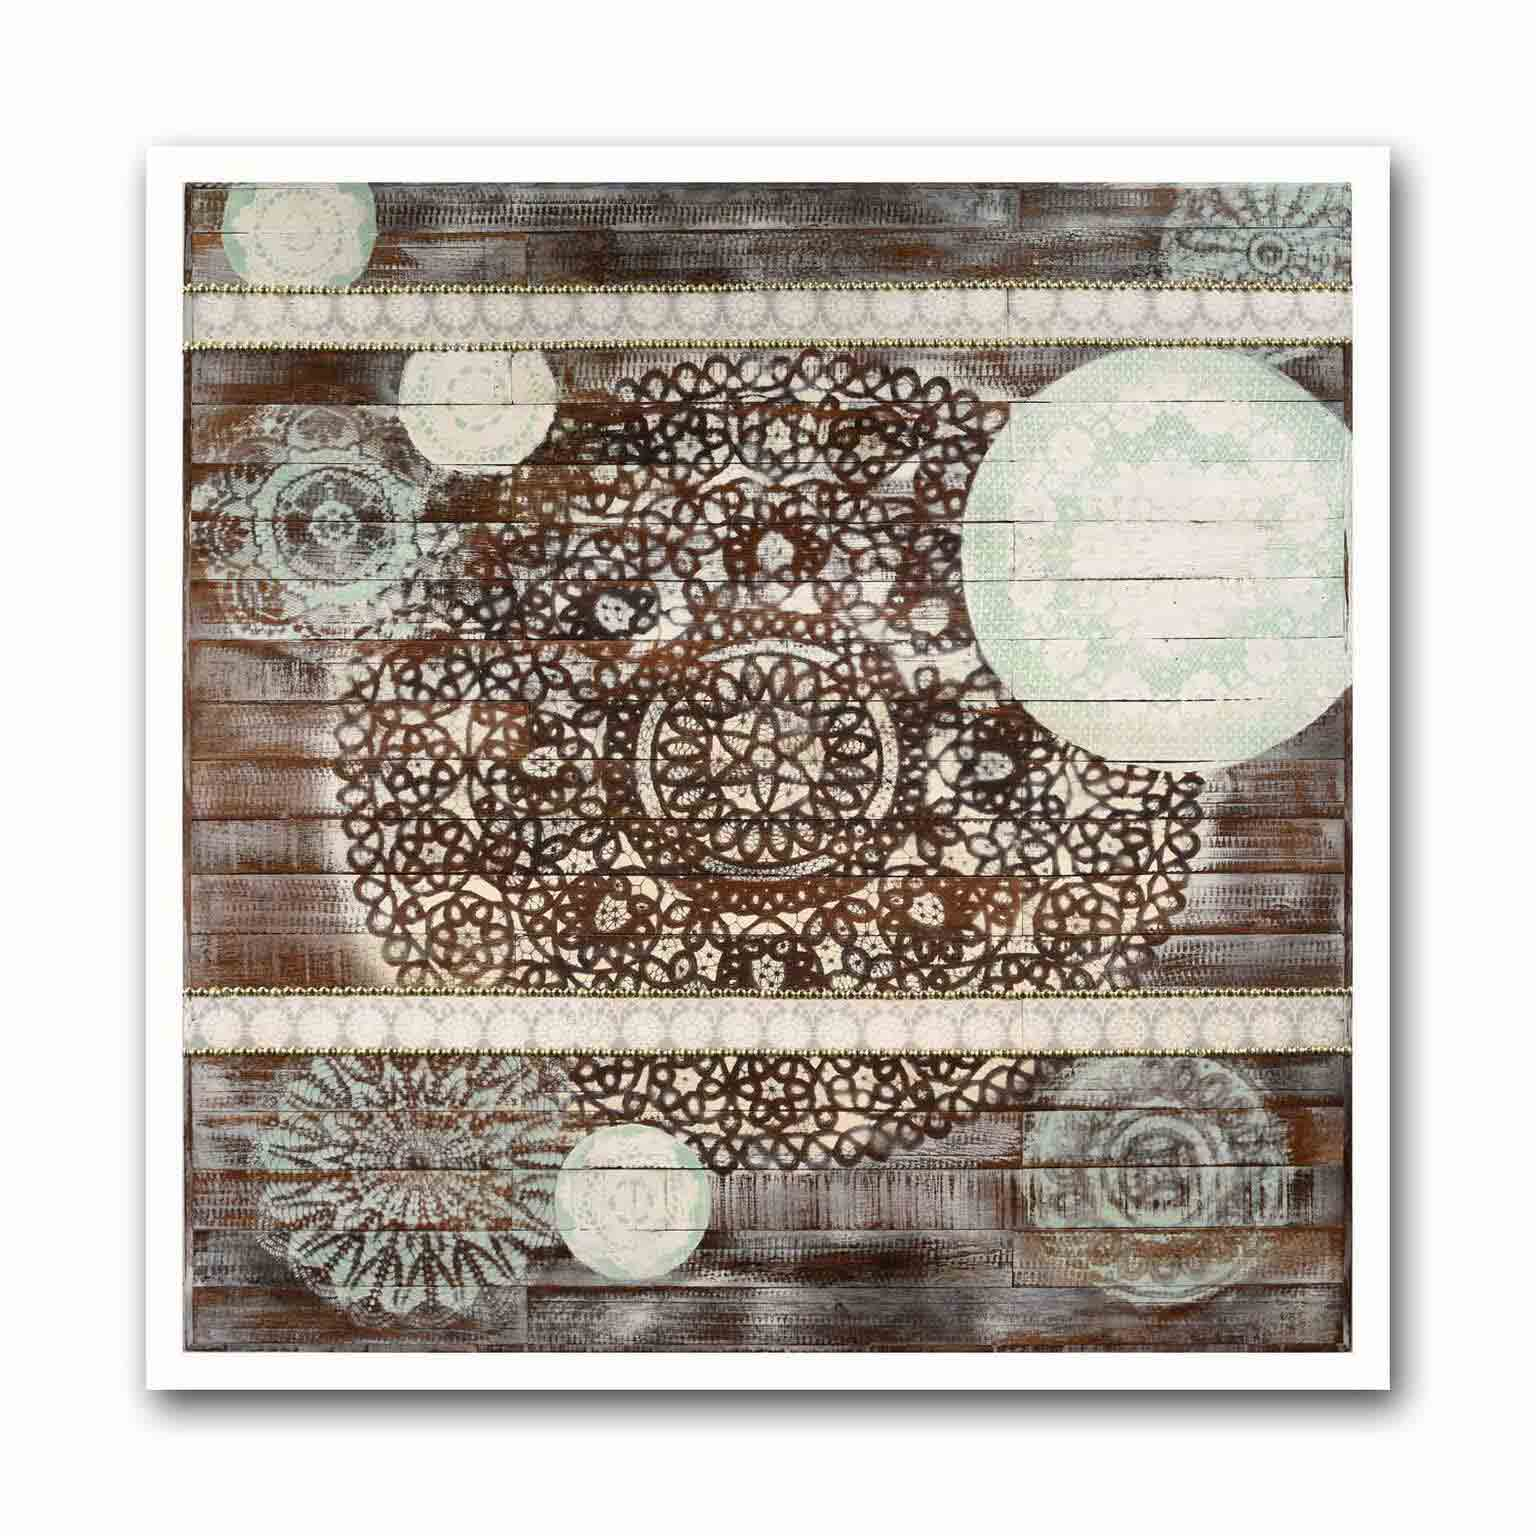 Antique Lace #14 Archival Print